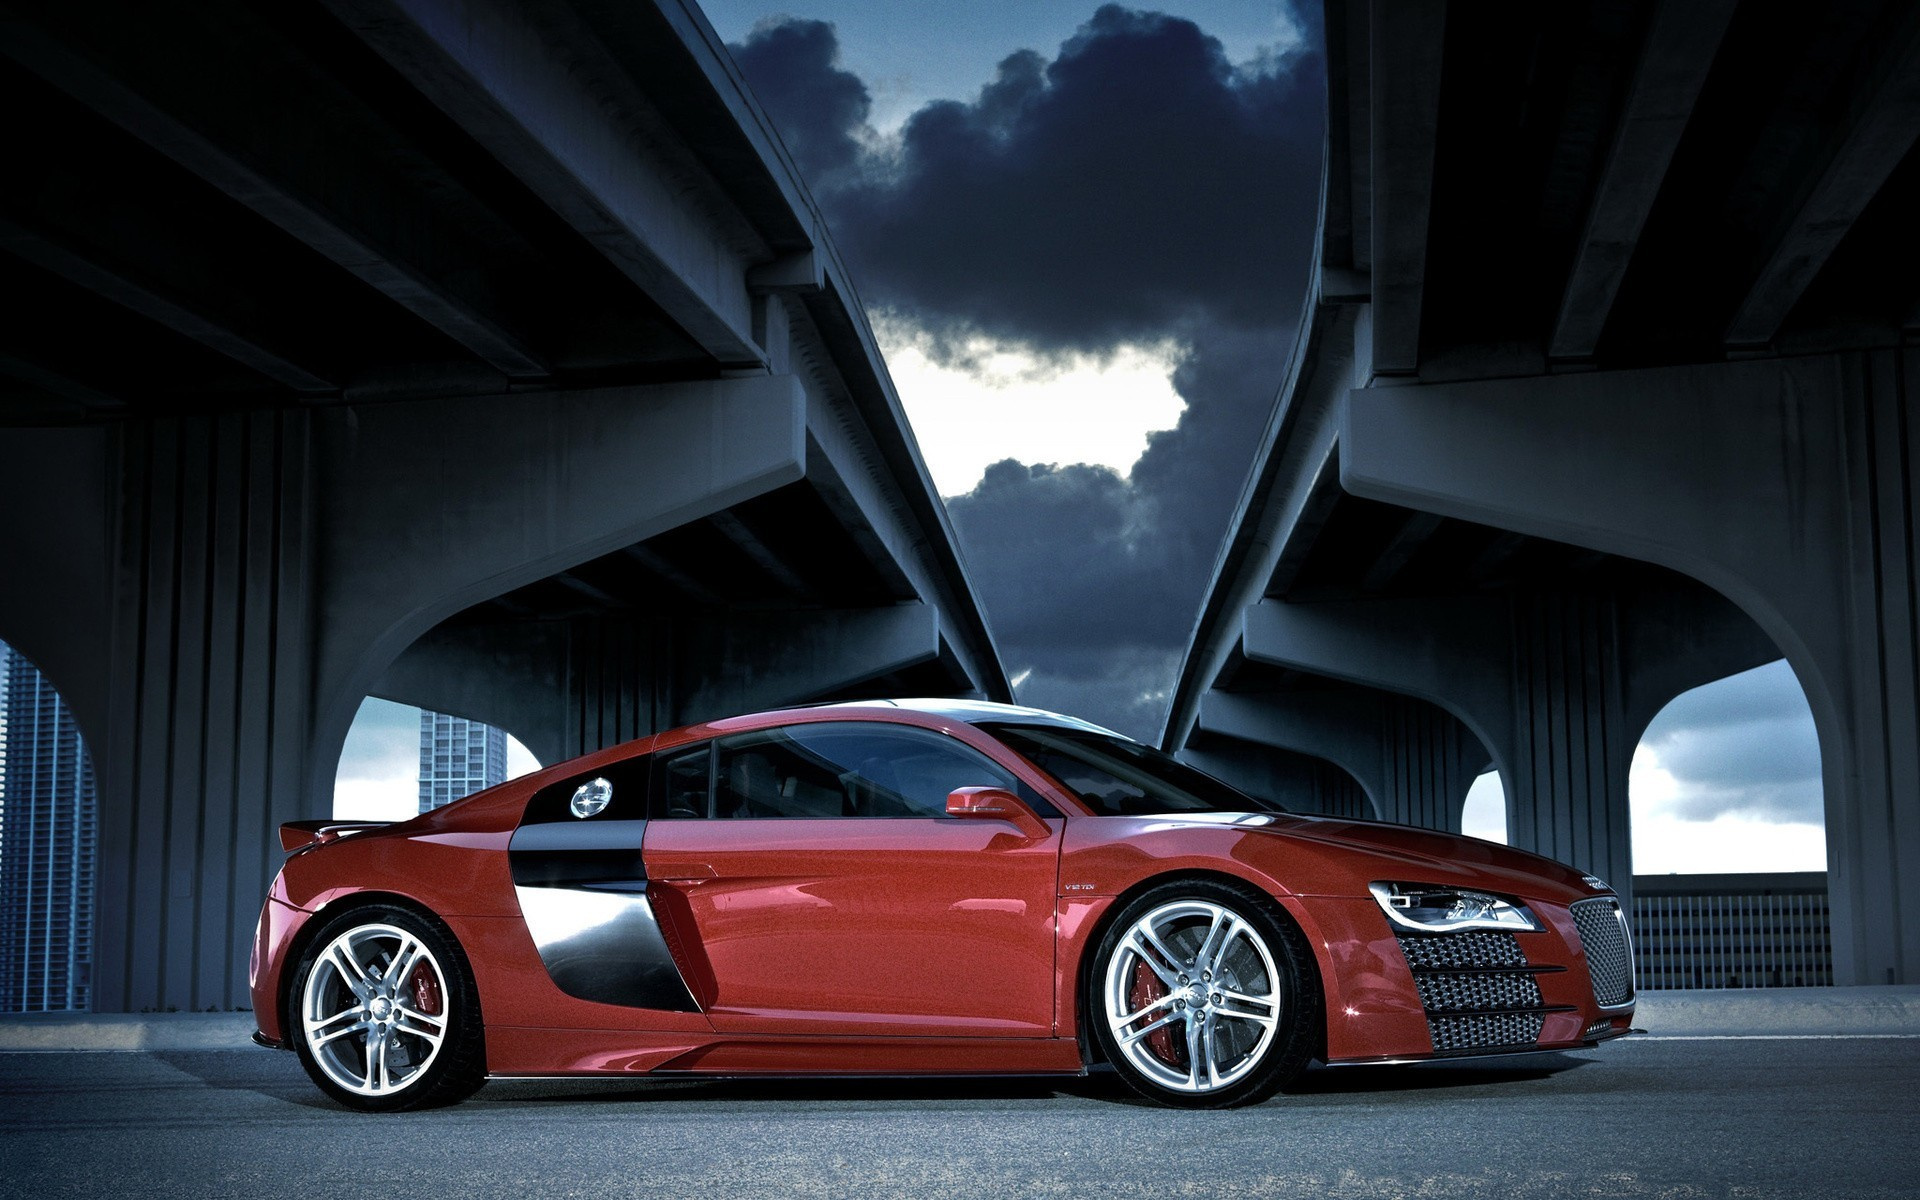 cars Audi vehicles audi HD Wallpaper